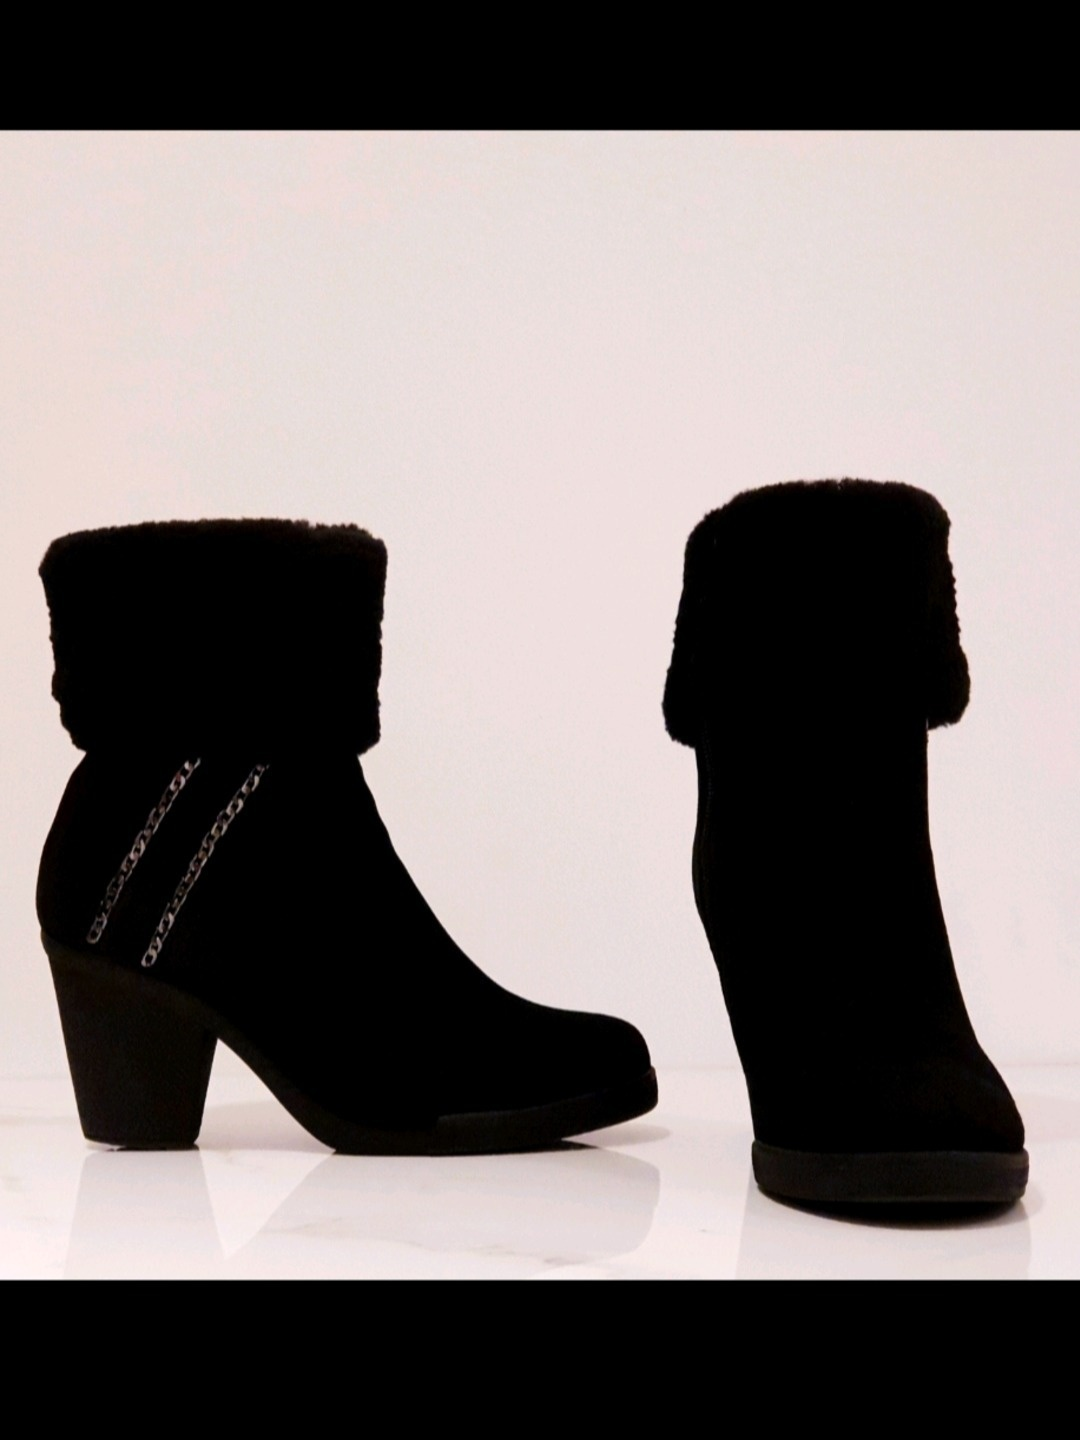 Women's boots - VERO CUOIO photo 1